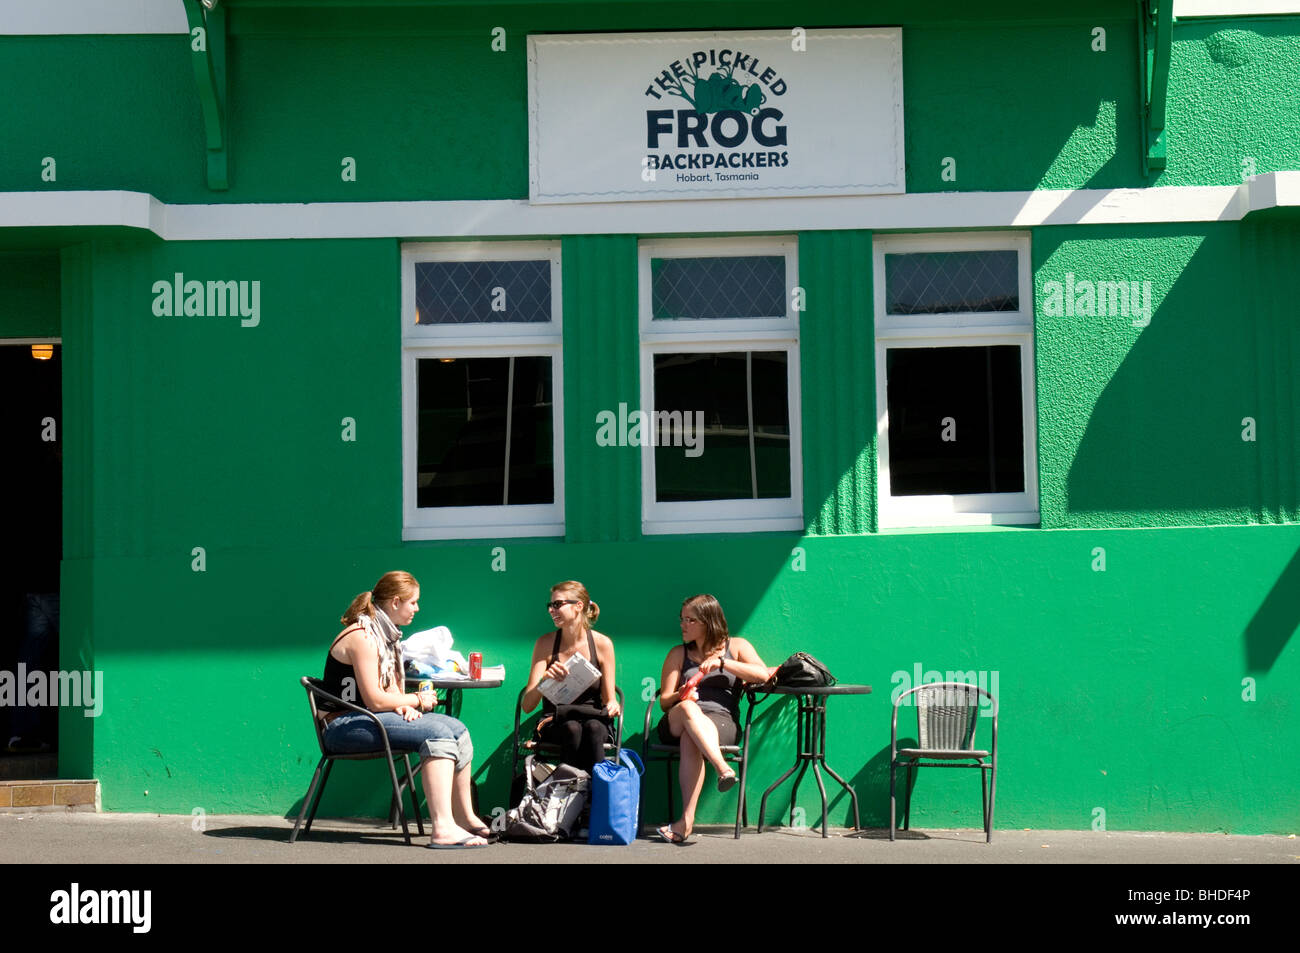 Young travellers relaxing outside a backpacker hostel, Hobart, Tasmania, Australia Stock Photo